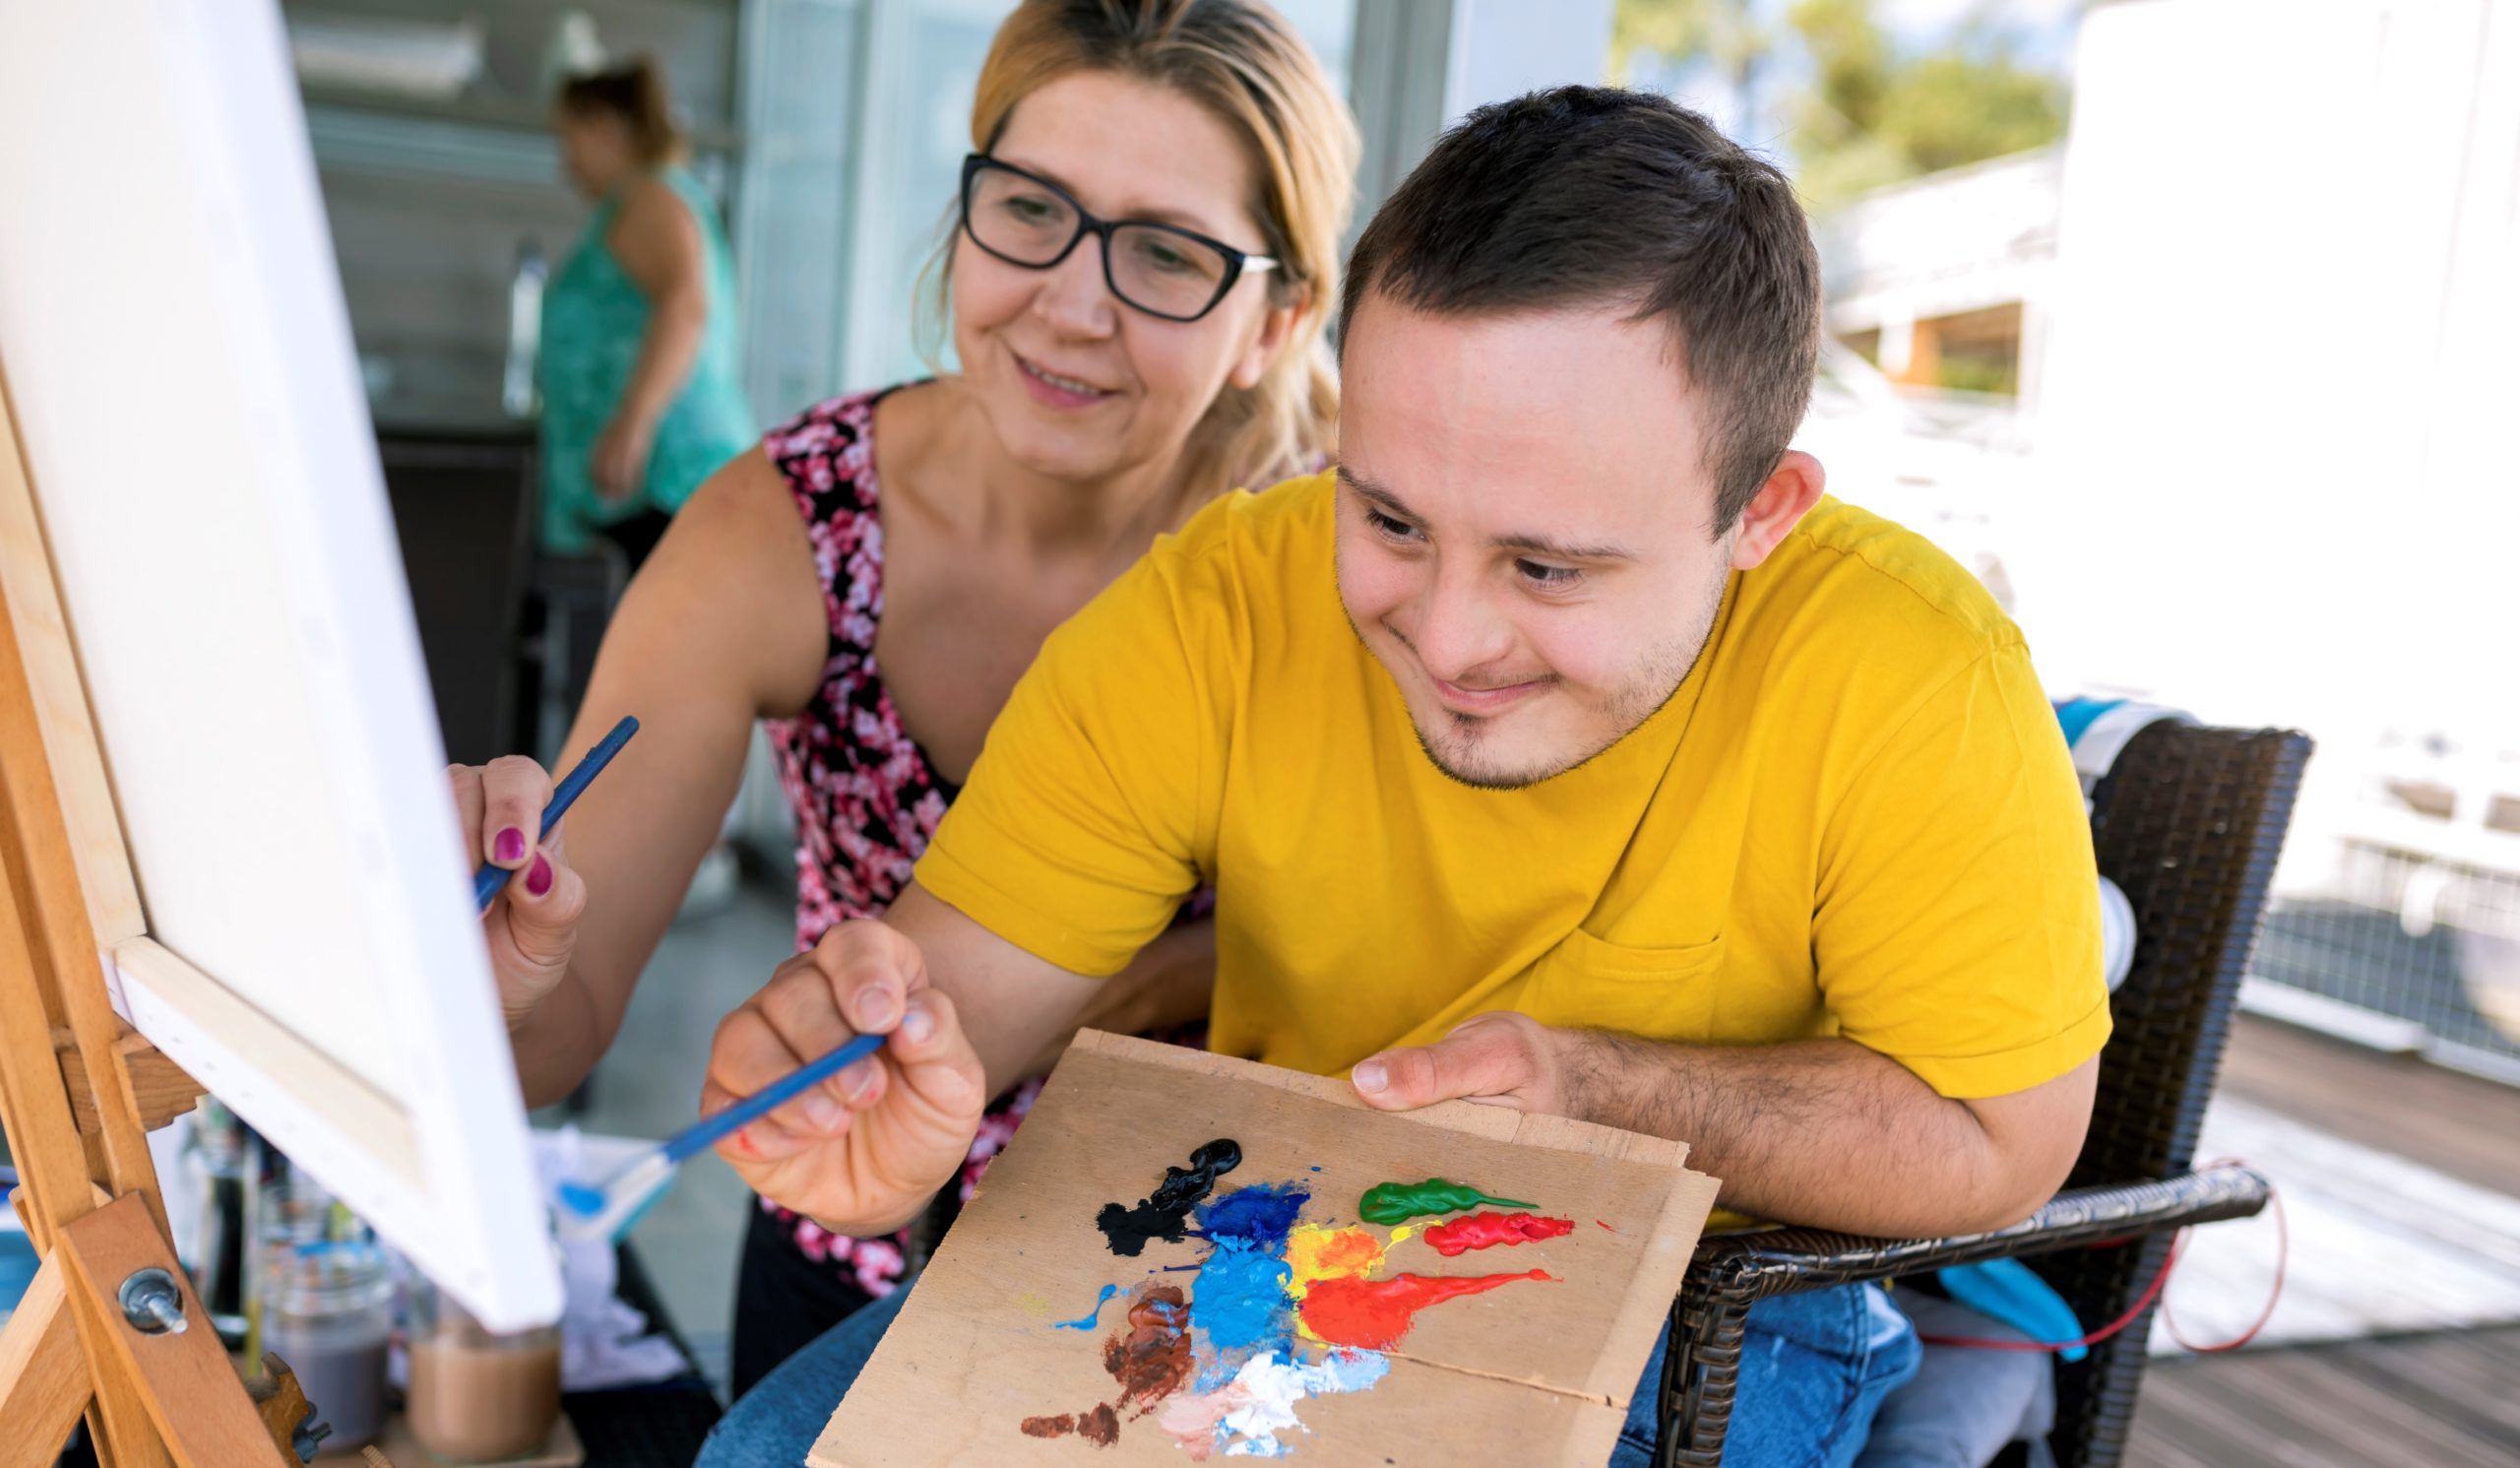 Male with Down syndrome painting on canvas with someone